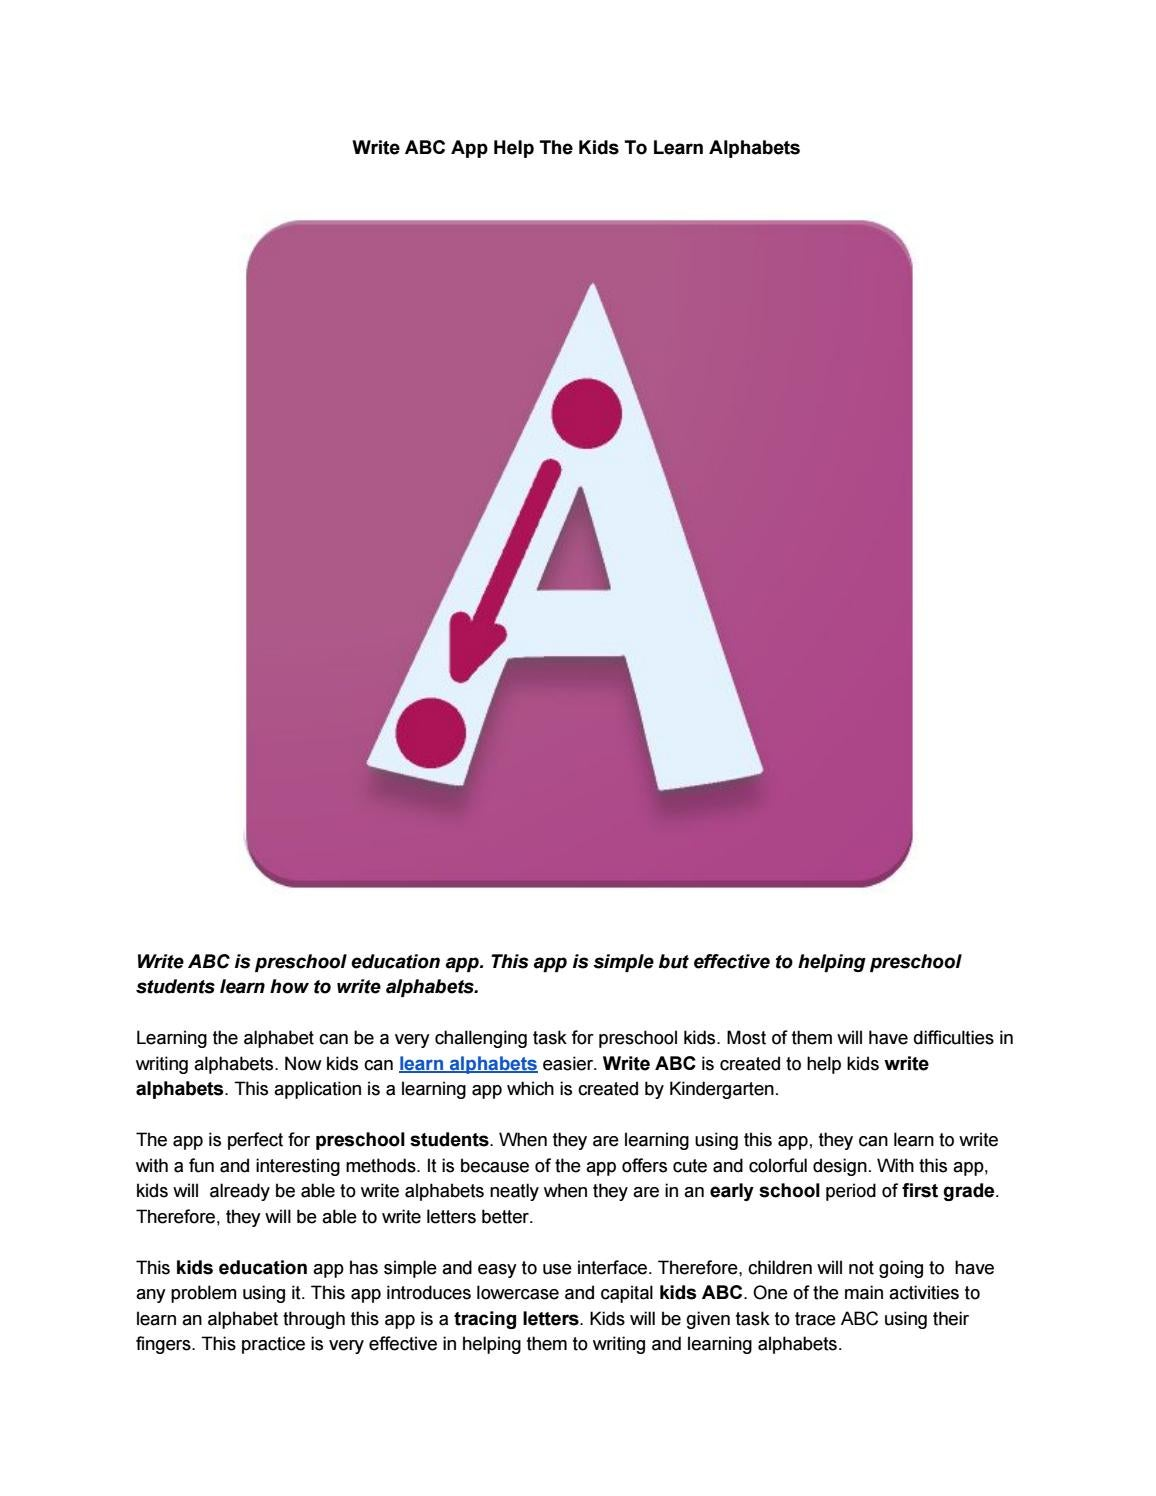 Write ABC App Help The Kids To Learn Alphabets by Demetrius